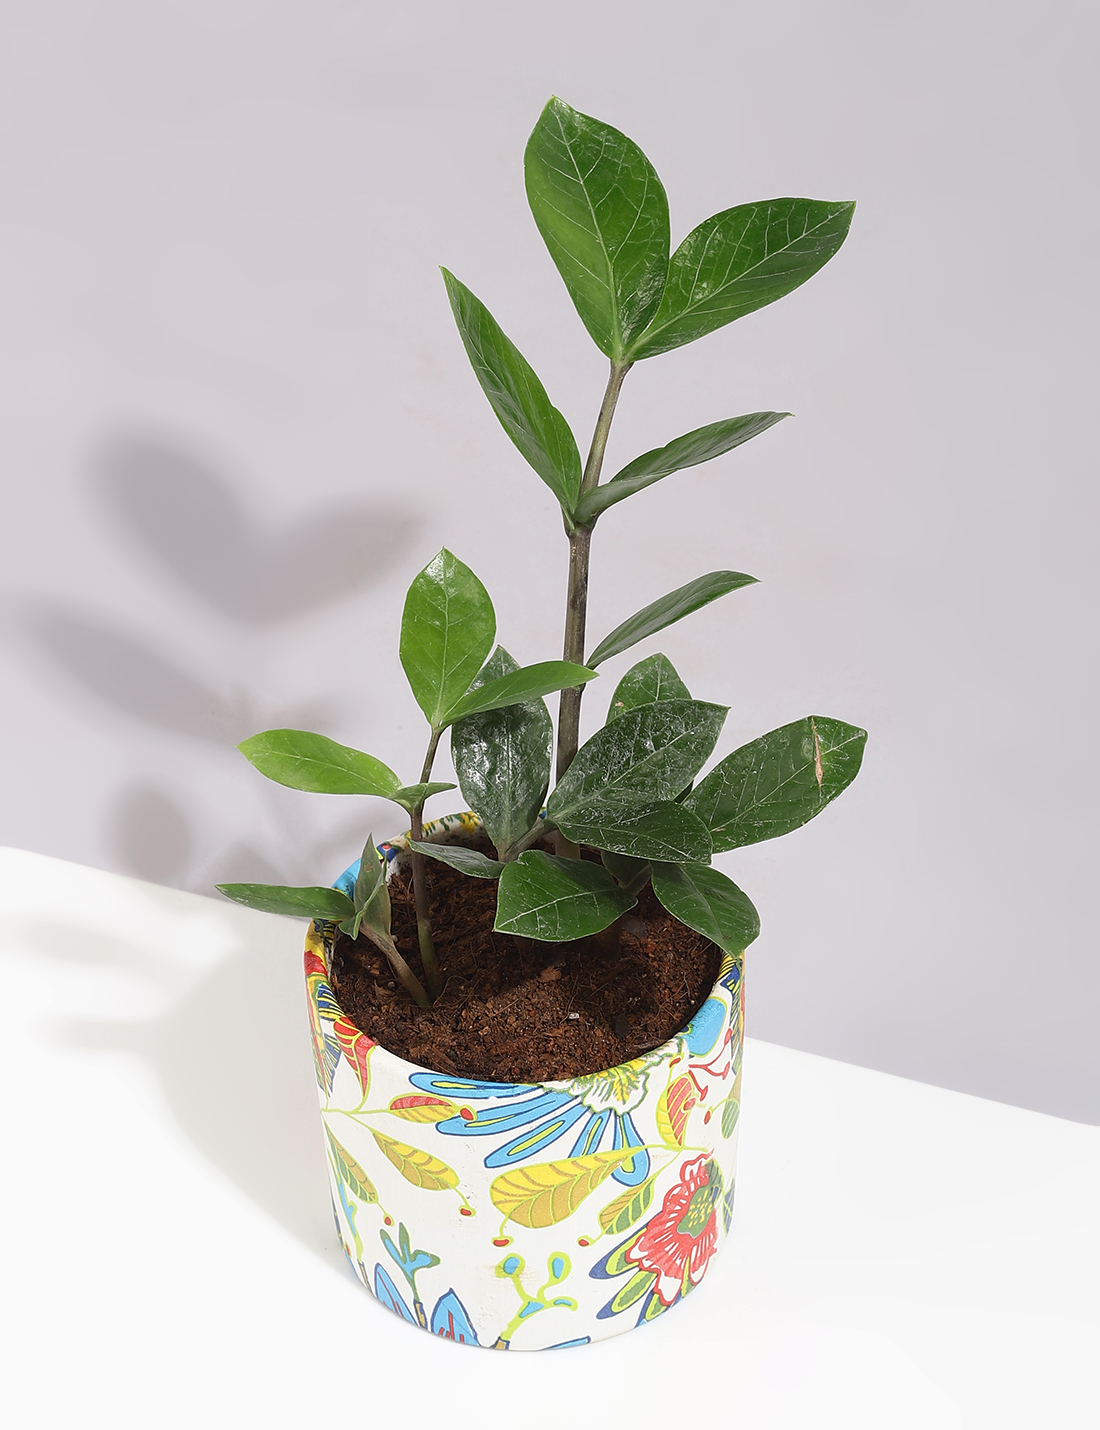 Zamia Plant In Handcrafted Printed Pot